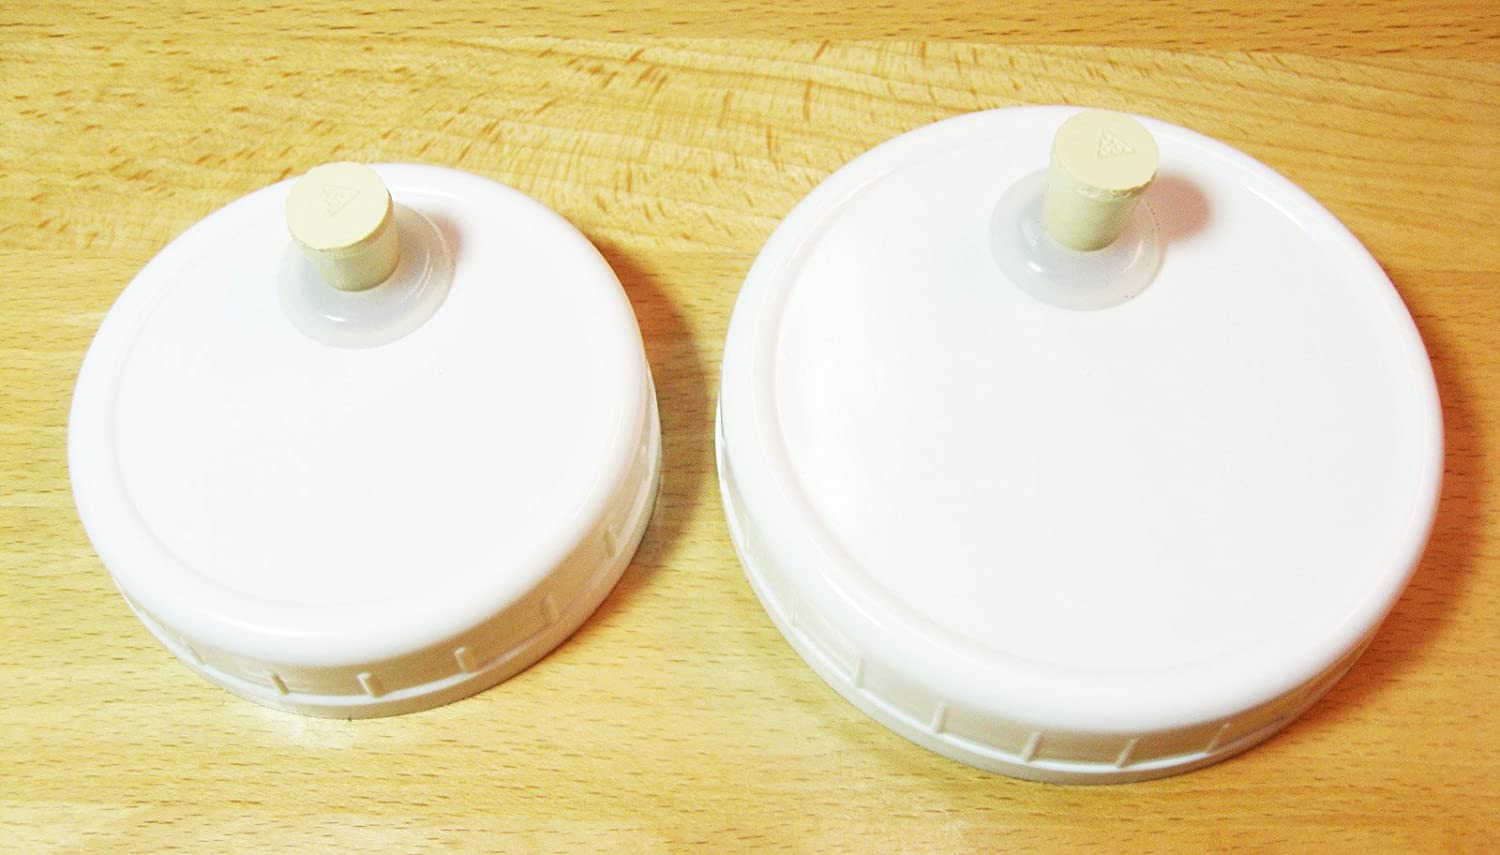 1 QRP Mason Jar Drinking / Fermentation Lids Caps Food Grade w/installed Grommets, Seals & Stoppers (1 REGULAR MOUTH) Quality Reliable Products